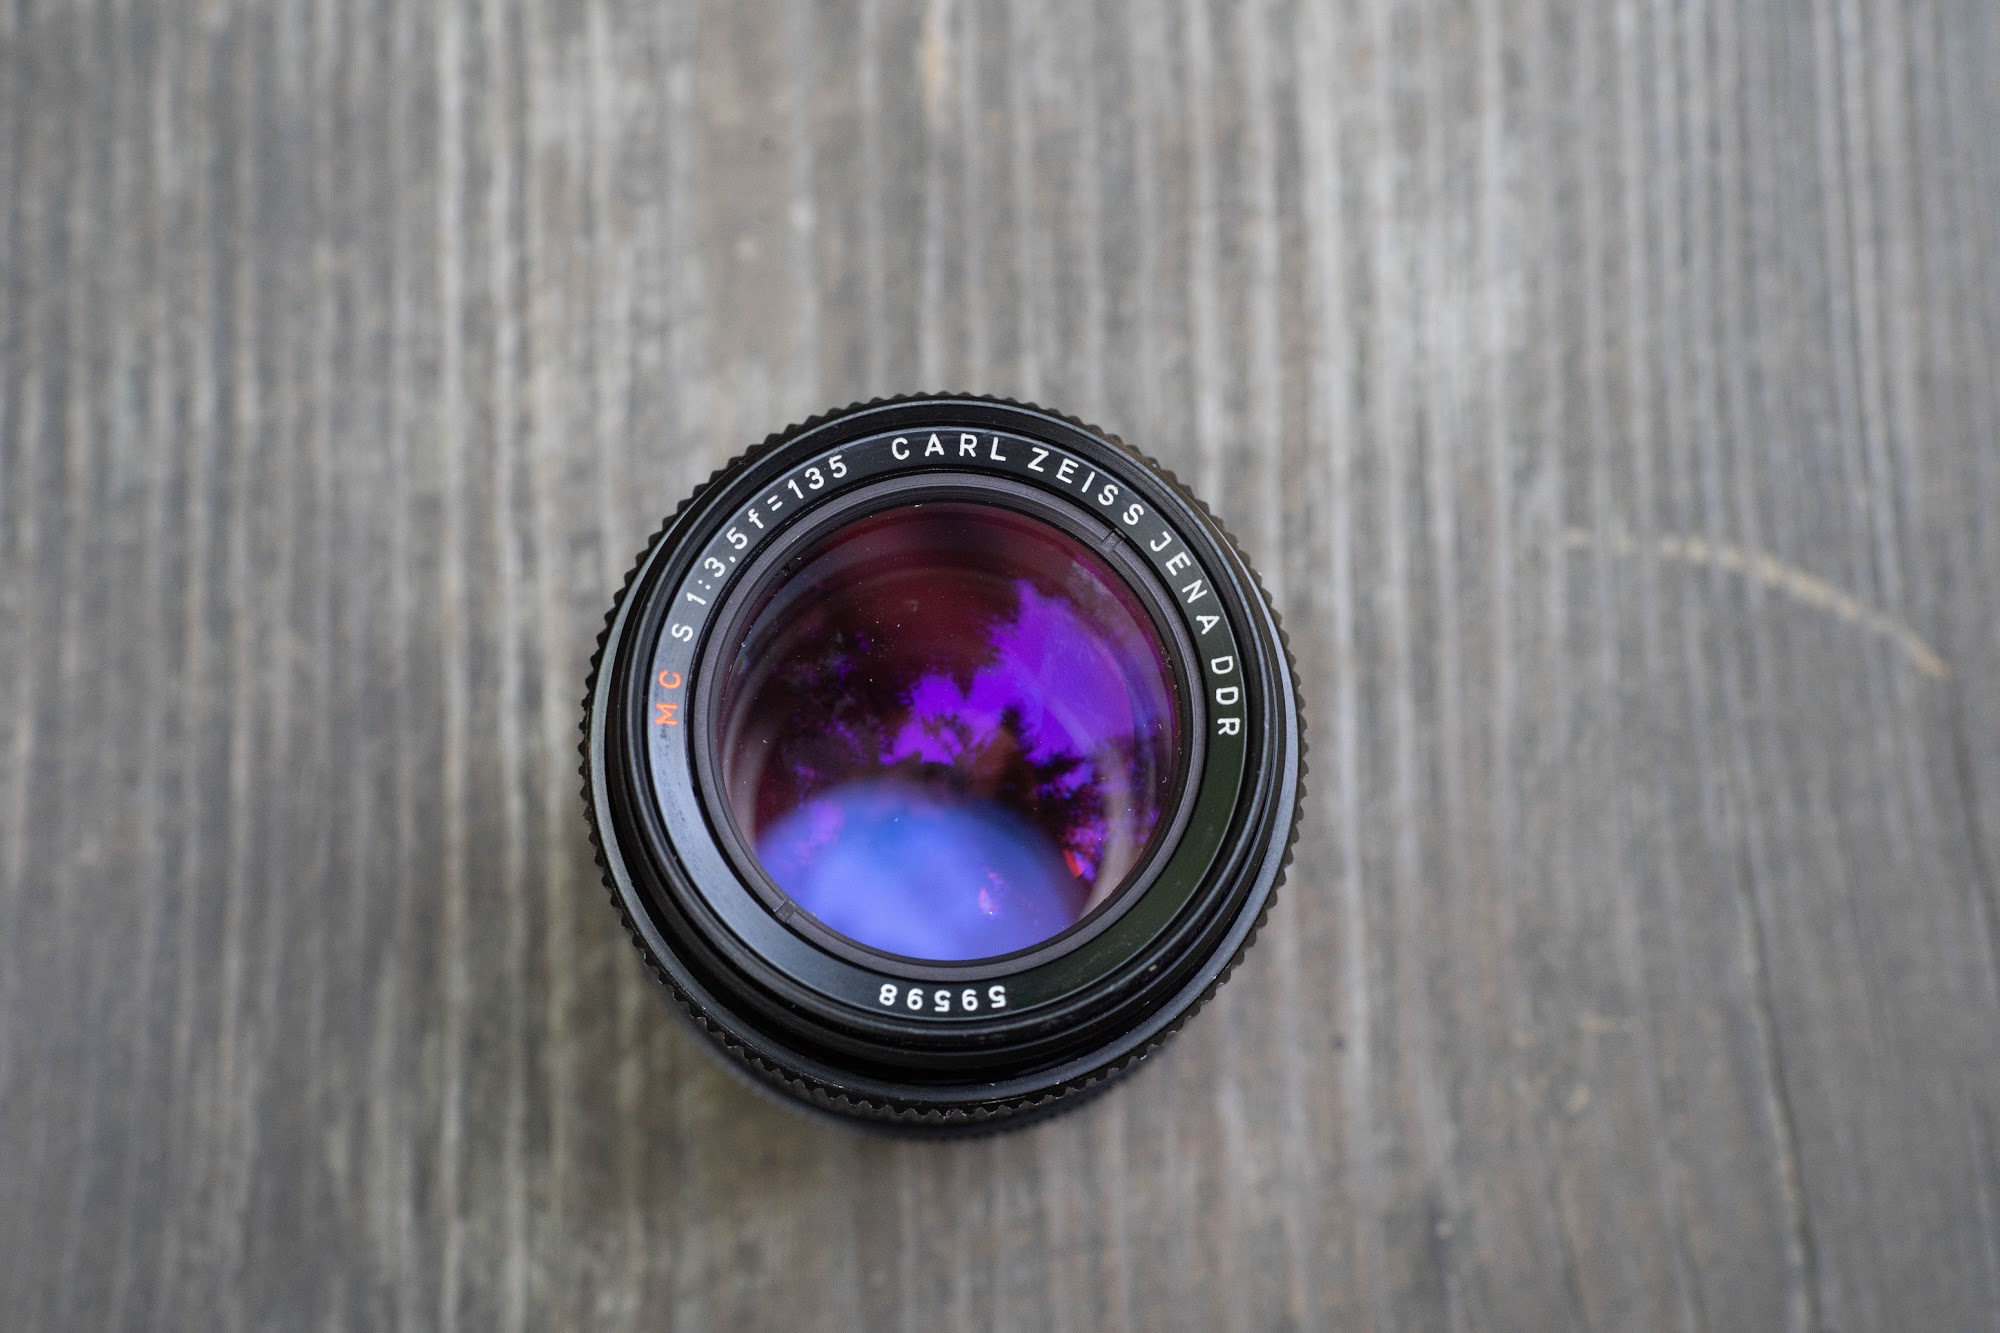 Carl Zeiss 135mm f3.5